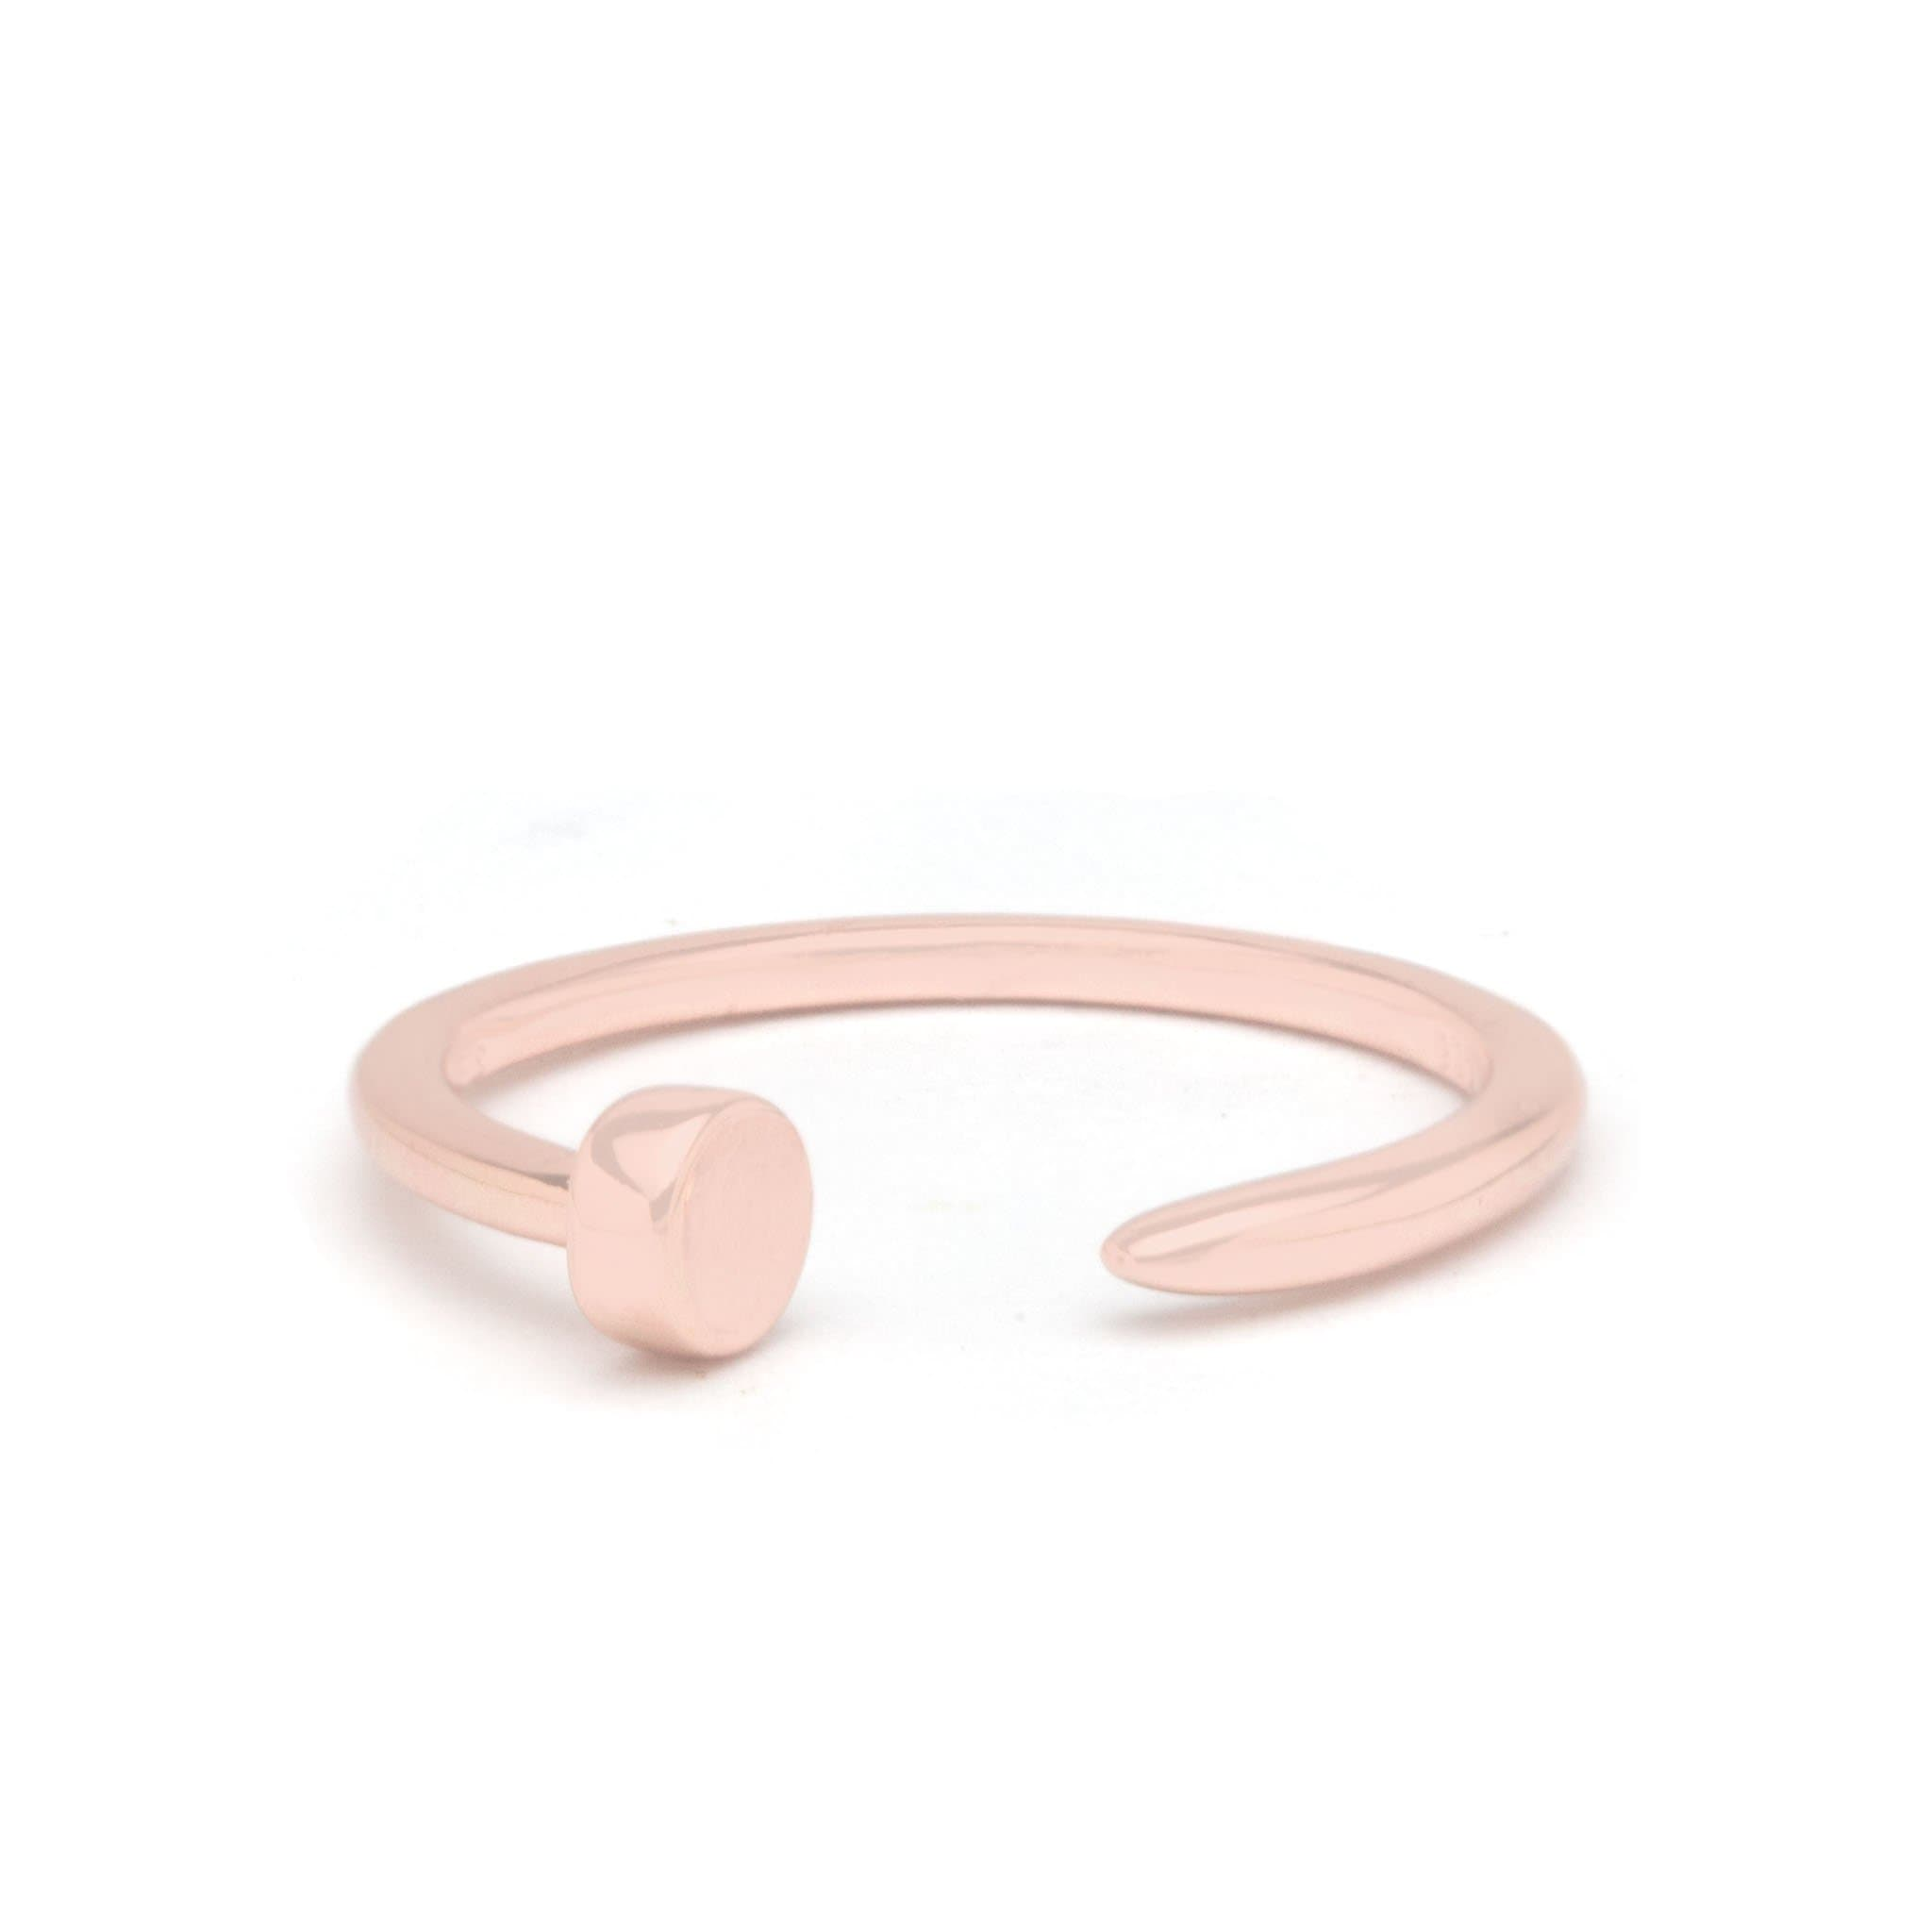 Jeanne's Jewels Rings Rose Gold / 5/6 Ximena